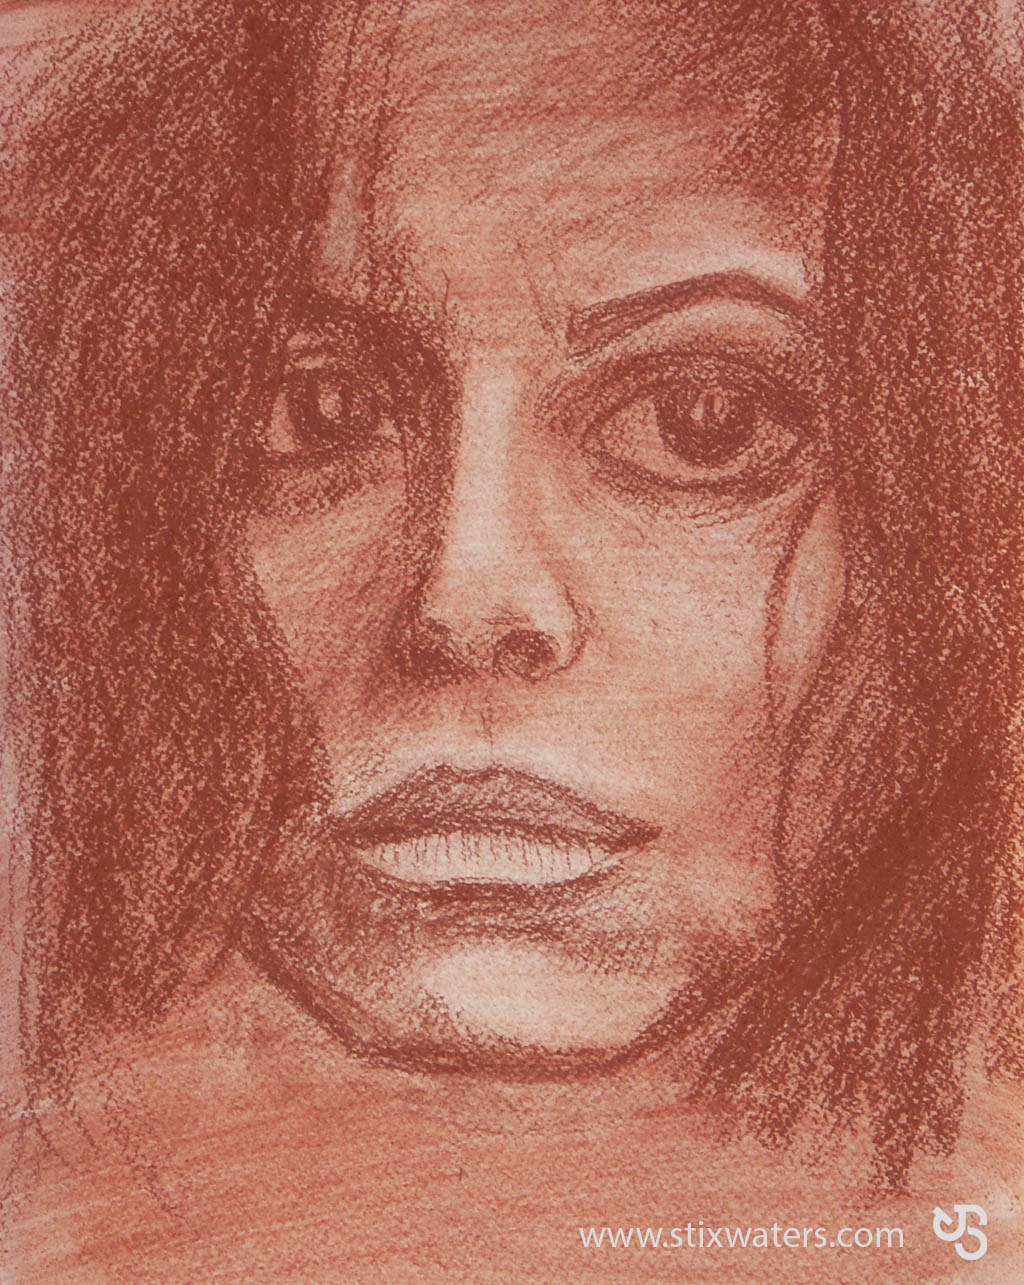 Face Sketch #3 by JStix